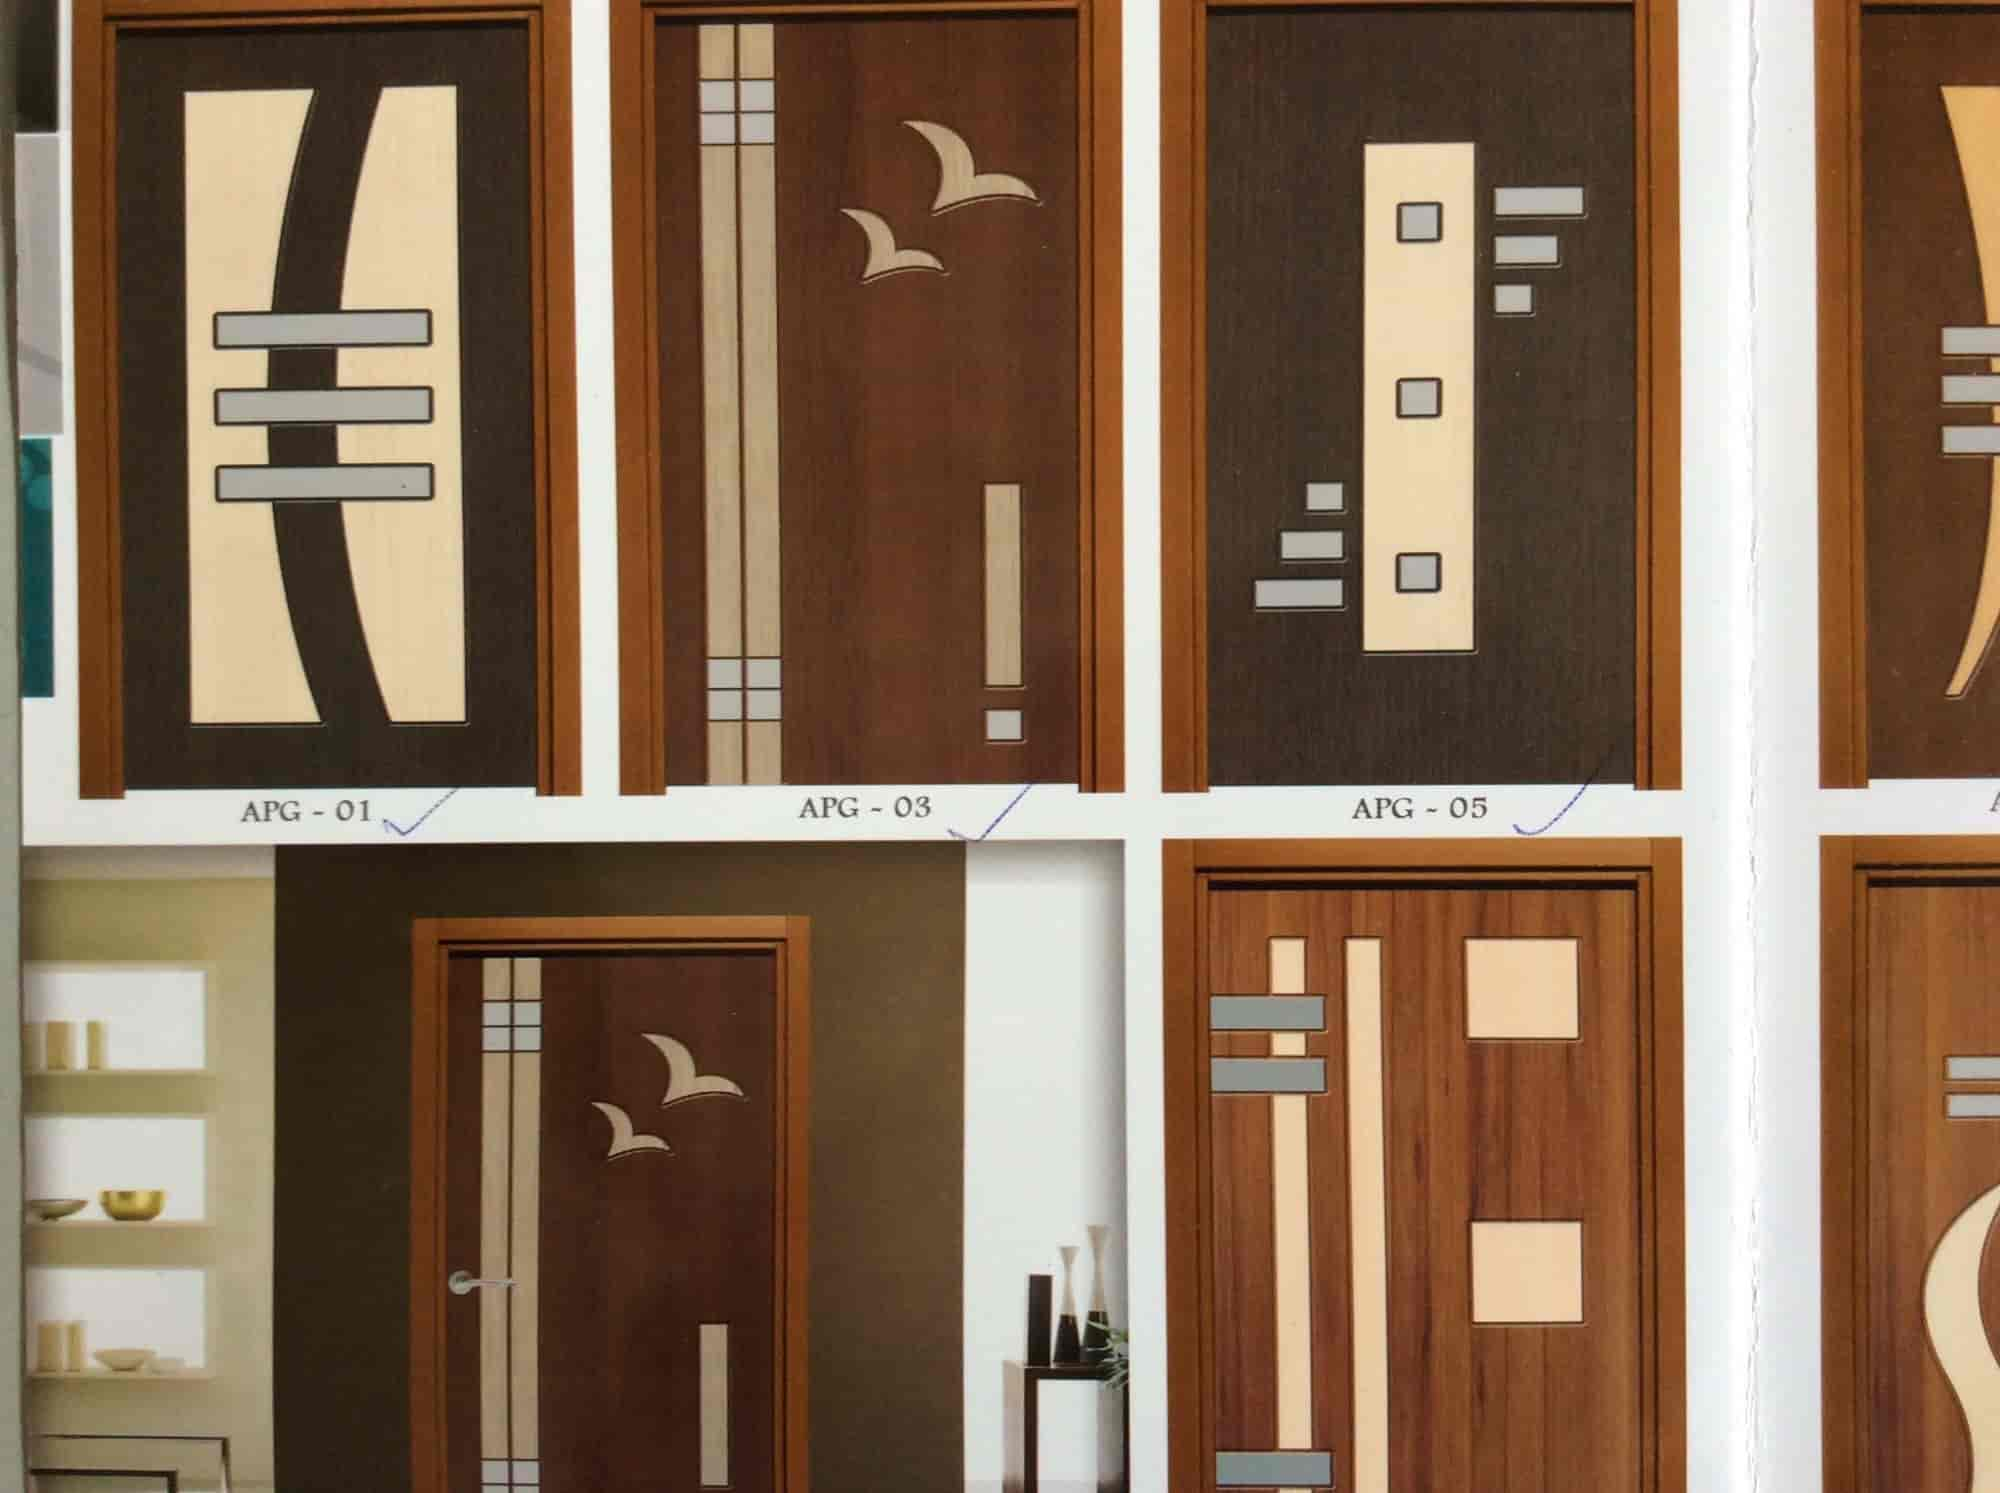 SAHU DOORS PLY Saddu - Plywood Dealers in Raipur-Chhattisgarh - Justdial & SAHU DOORS PLY Saddu - Plywood Dealers in Raipur-Chhattisgarh ...